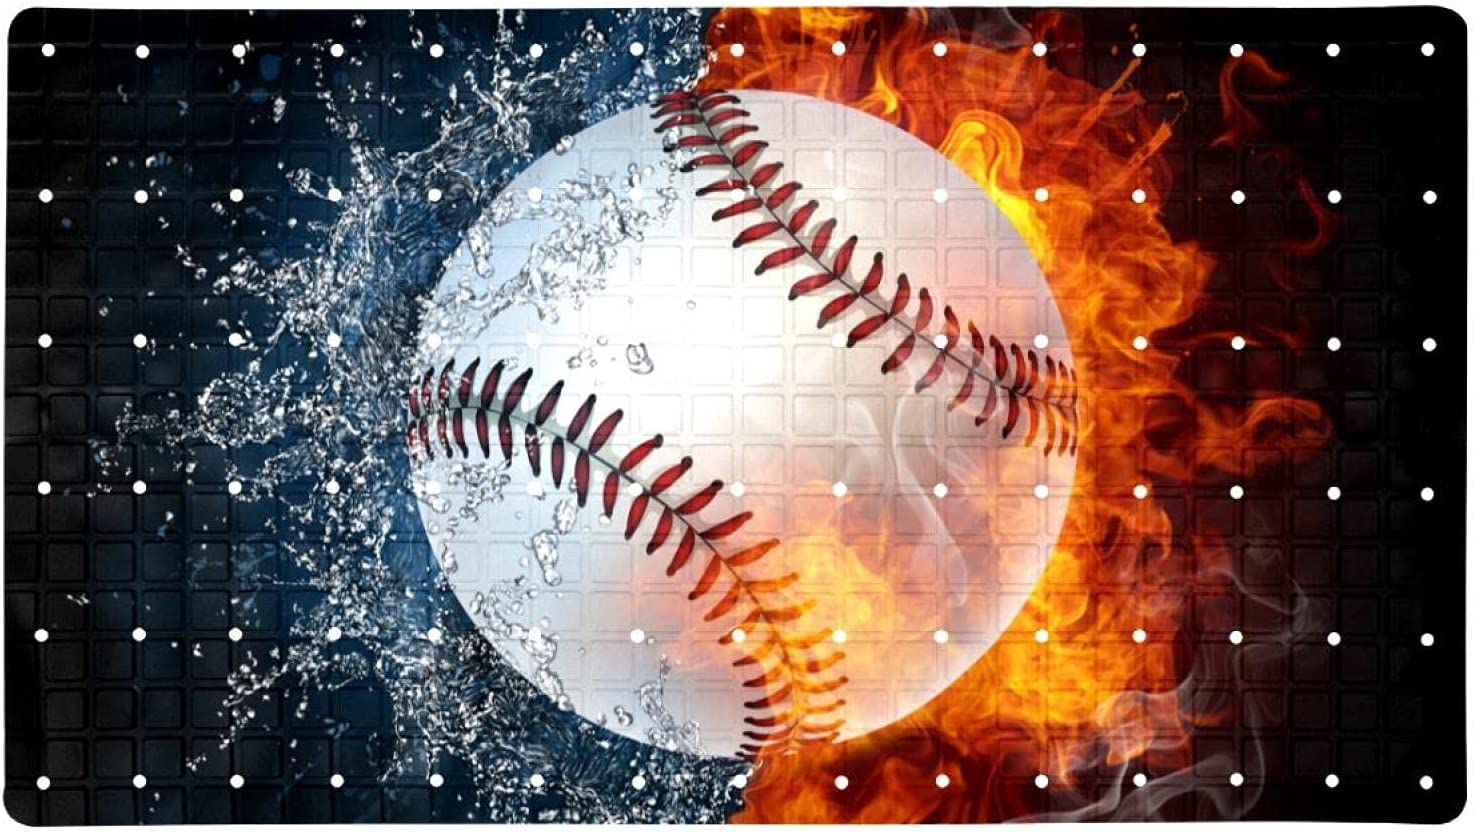 Bath Fresno Mall Tub Shower Mat 15.7x27.9 inches Indefinitely Fire Baseball Ball in W and